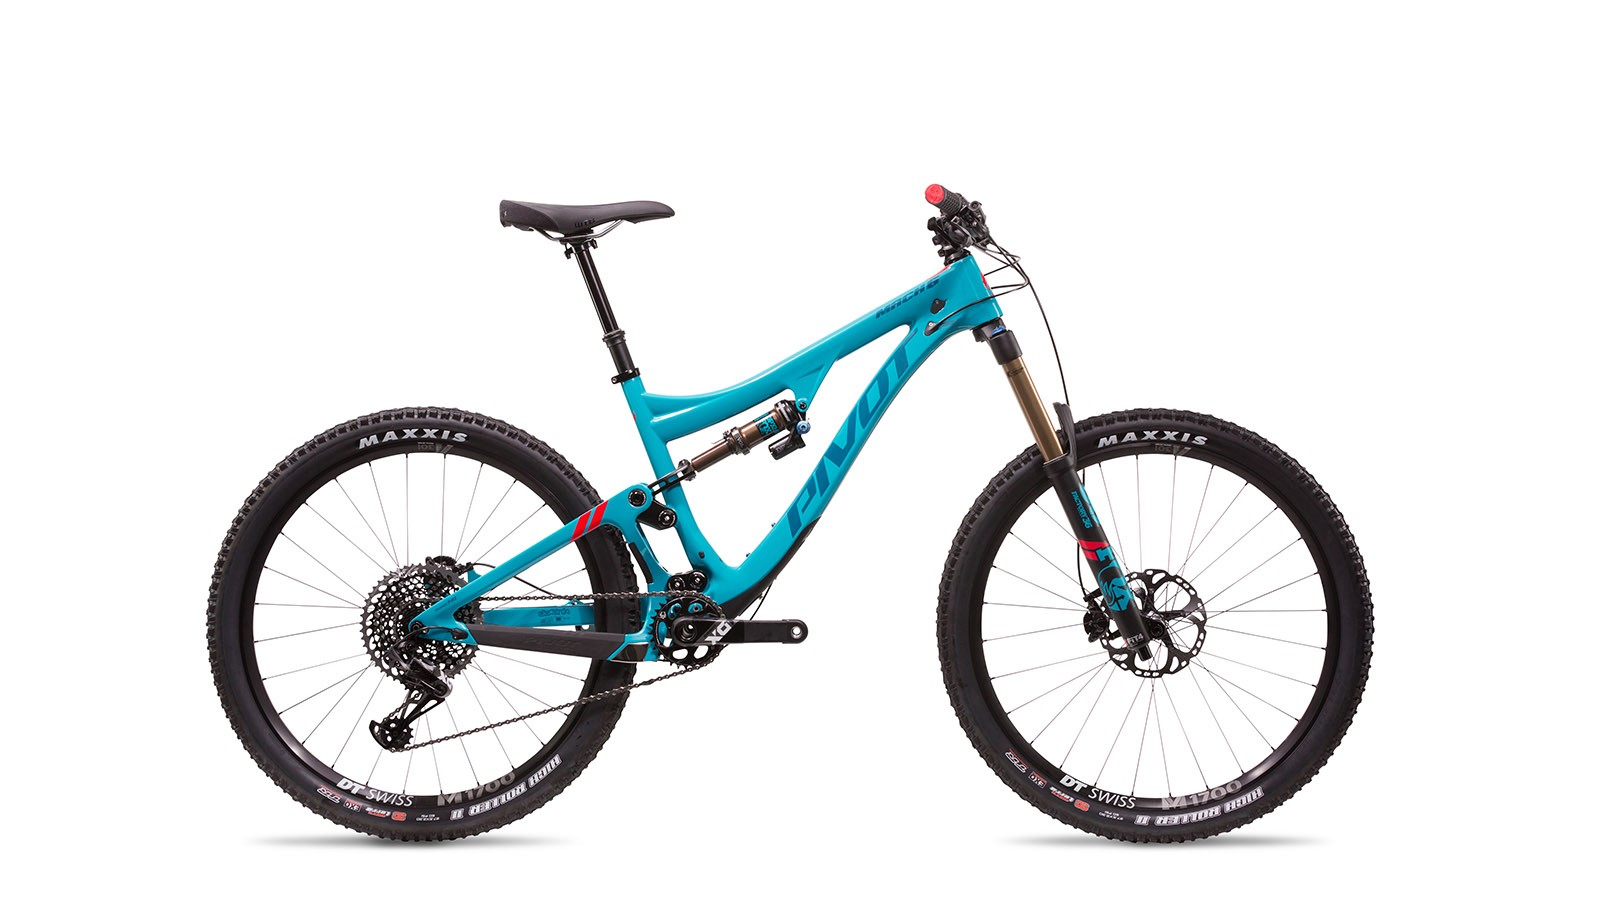 The carbon version sees internal cabel routing, bash guards and a FOX Factory Kashima Float DPX2 rear shock